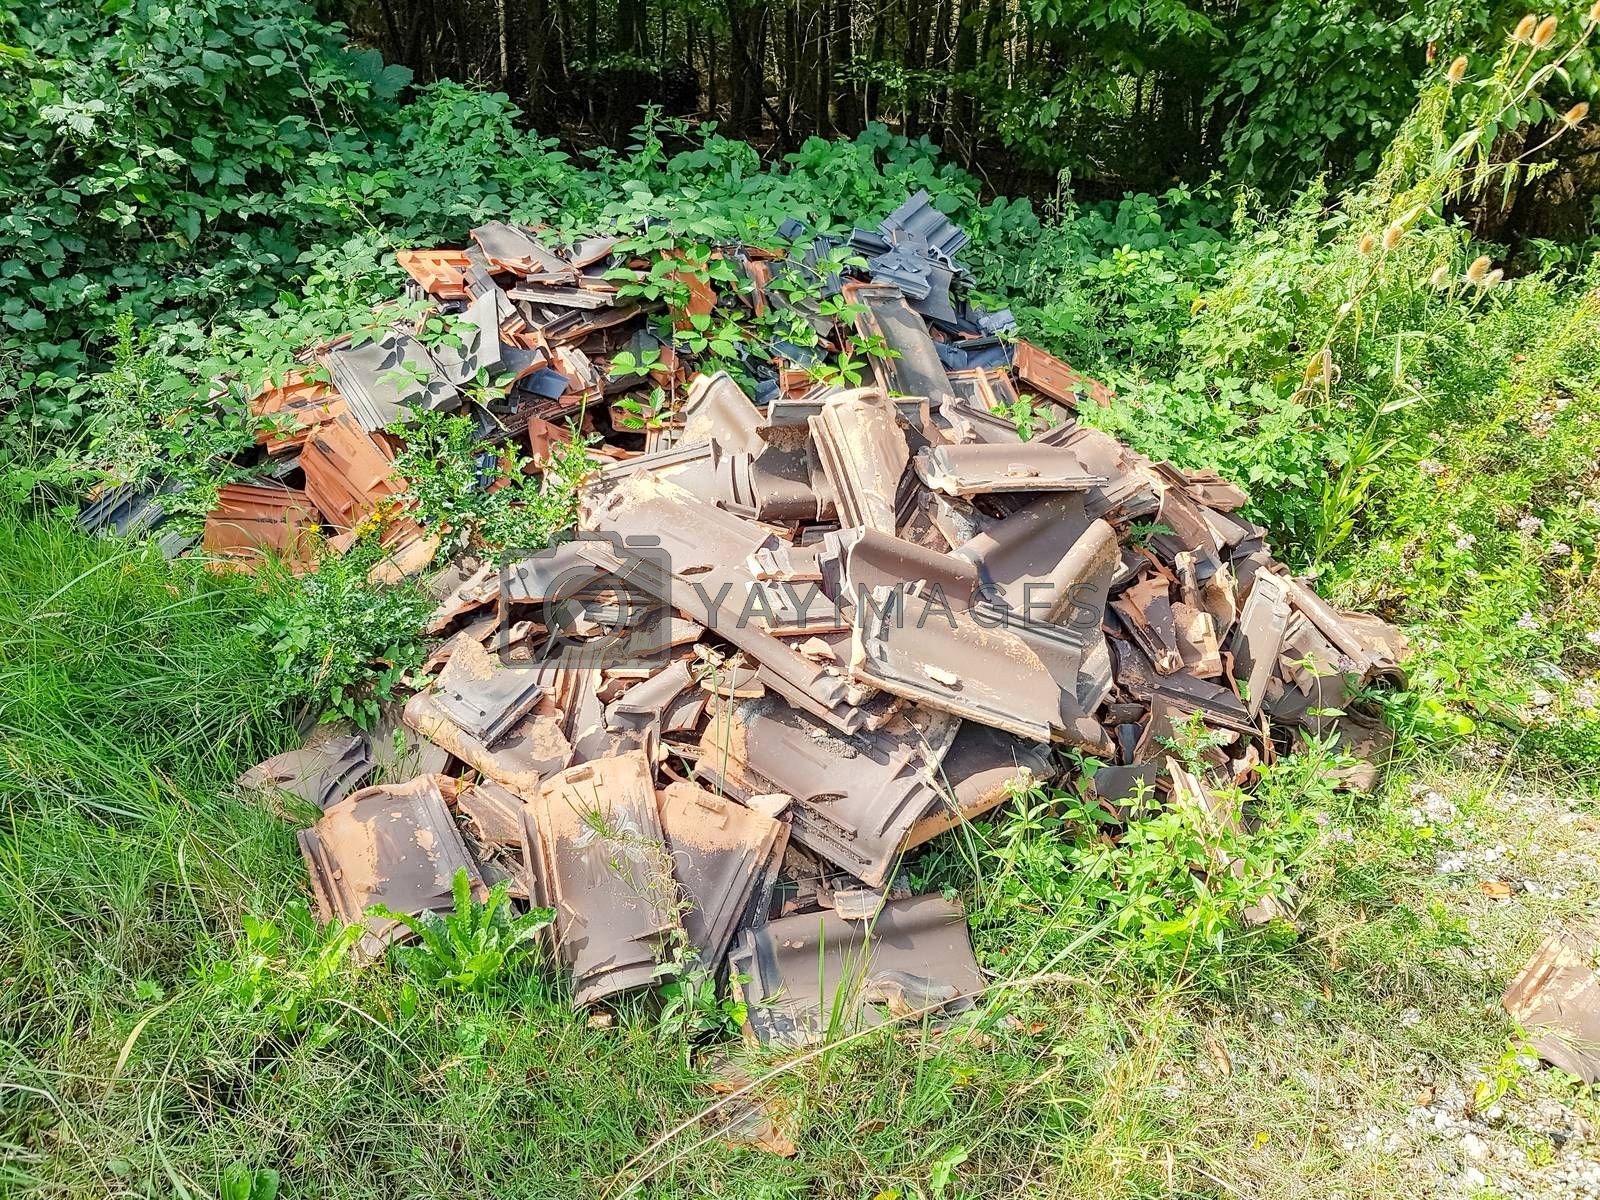 Illegal and illegal disposal of roof tiles in a forest